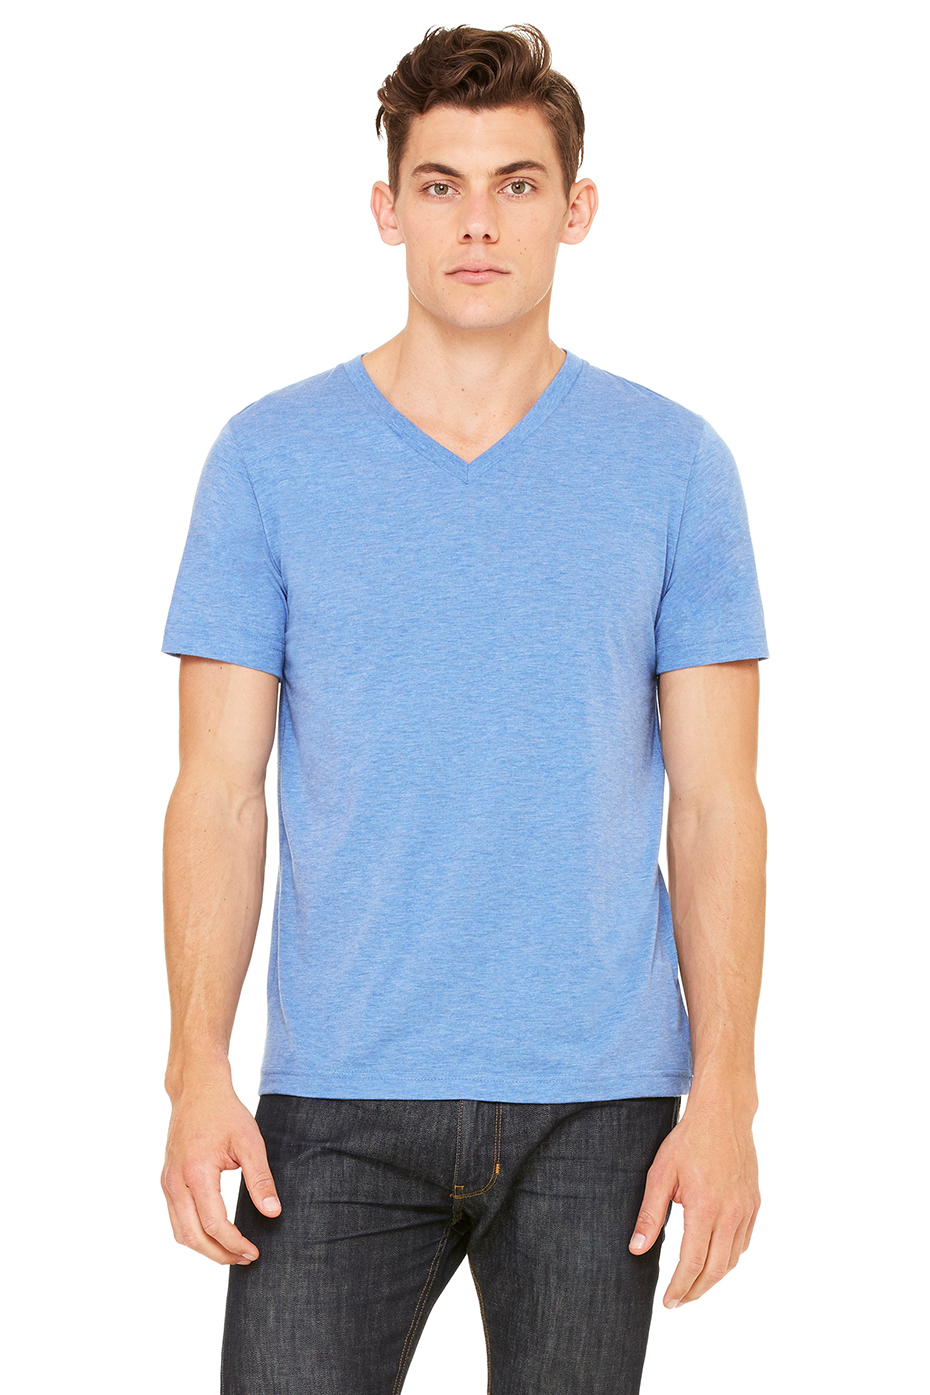 Shop vince short sleeve tee at Neiman Marcus, where you will find free shipping on the latest in fashion from top designers.